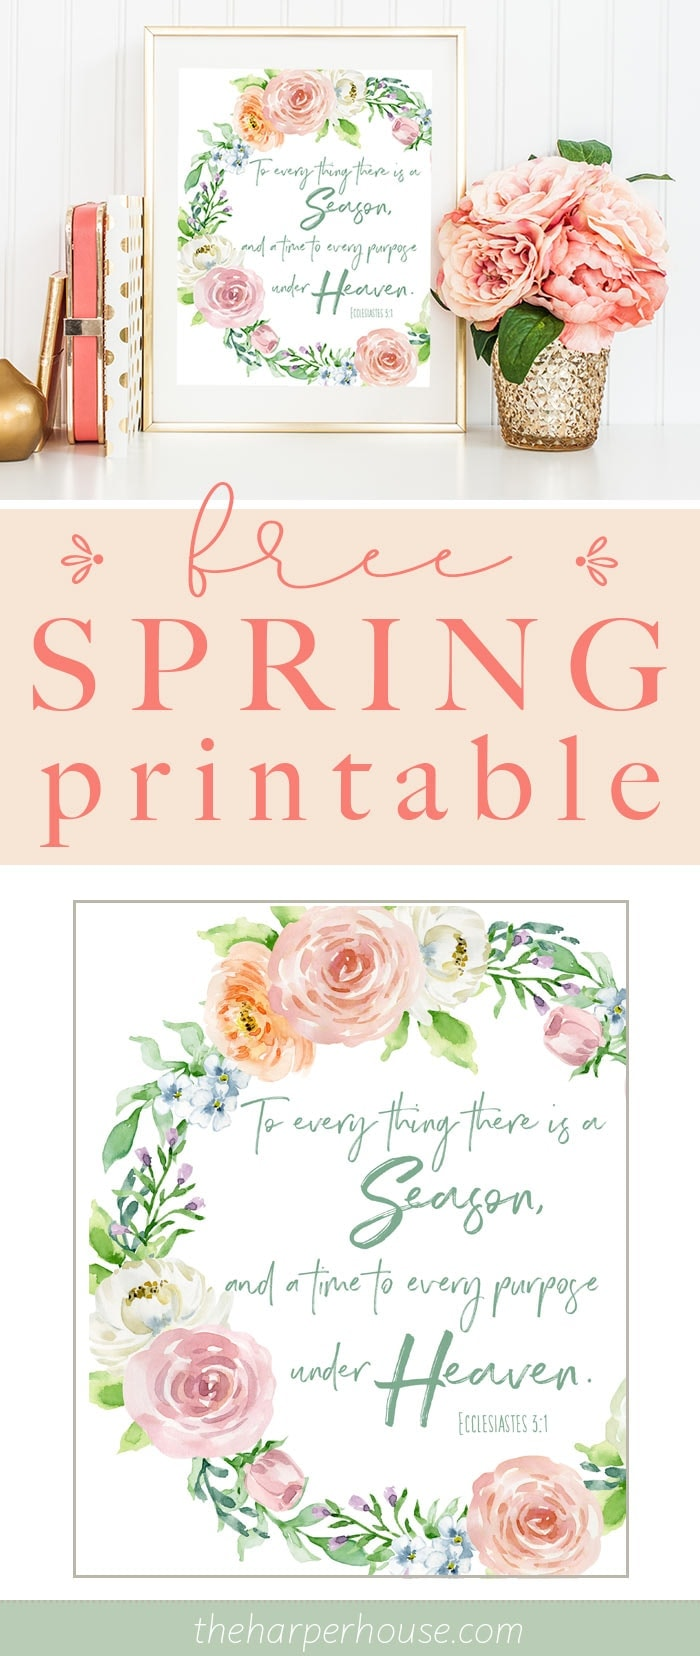 free spring printable - Ecclesiastes 3:1 To everything there is a season #printforwalls #freeprint #printable #faith